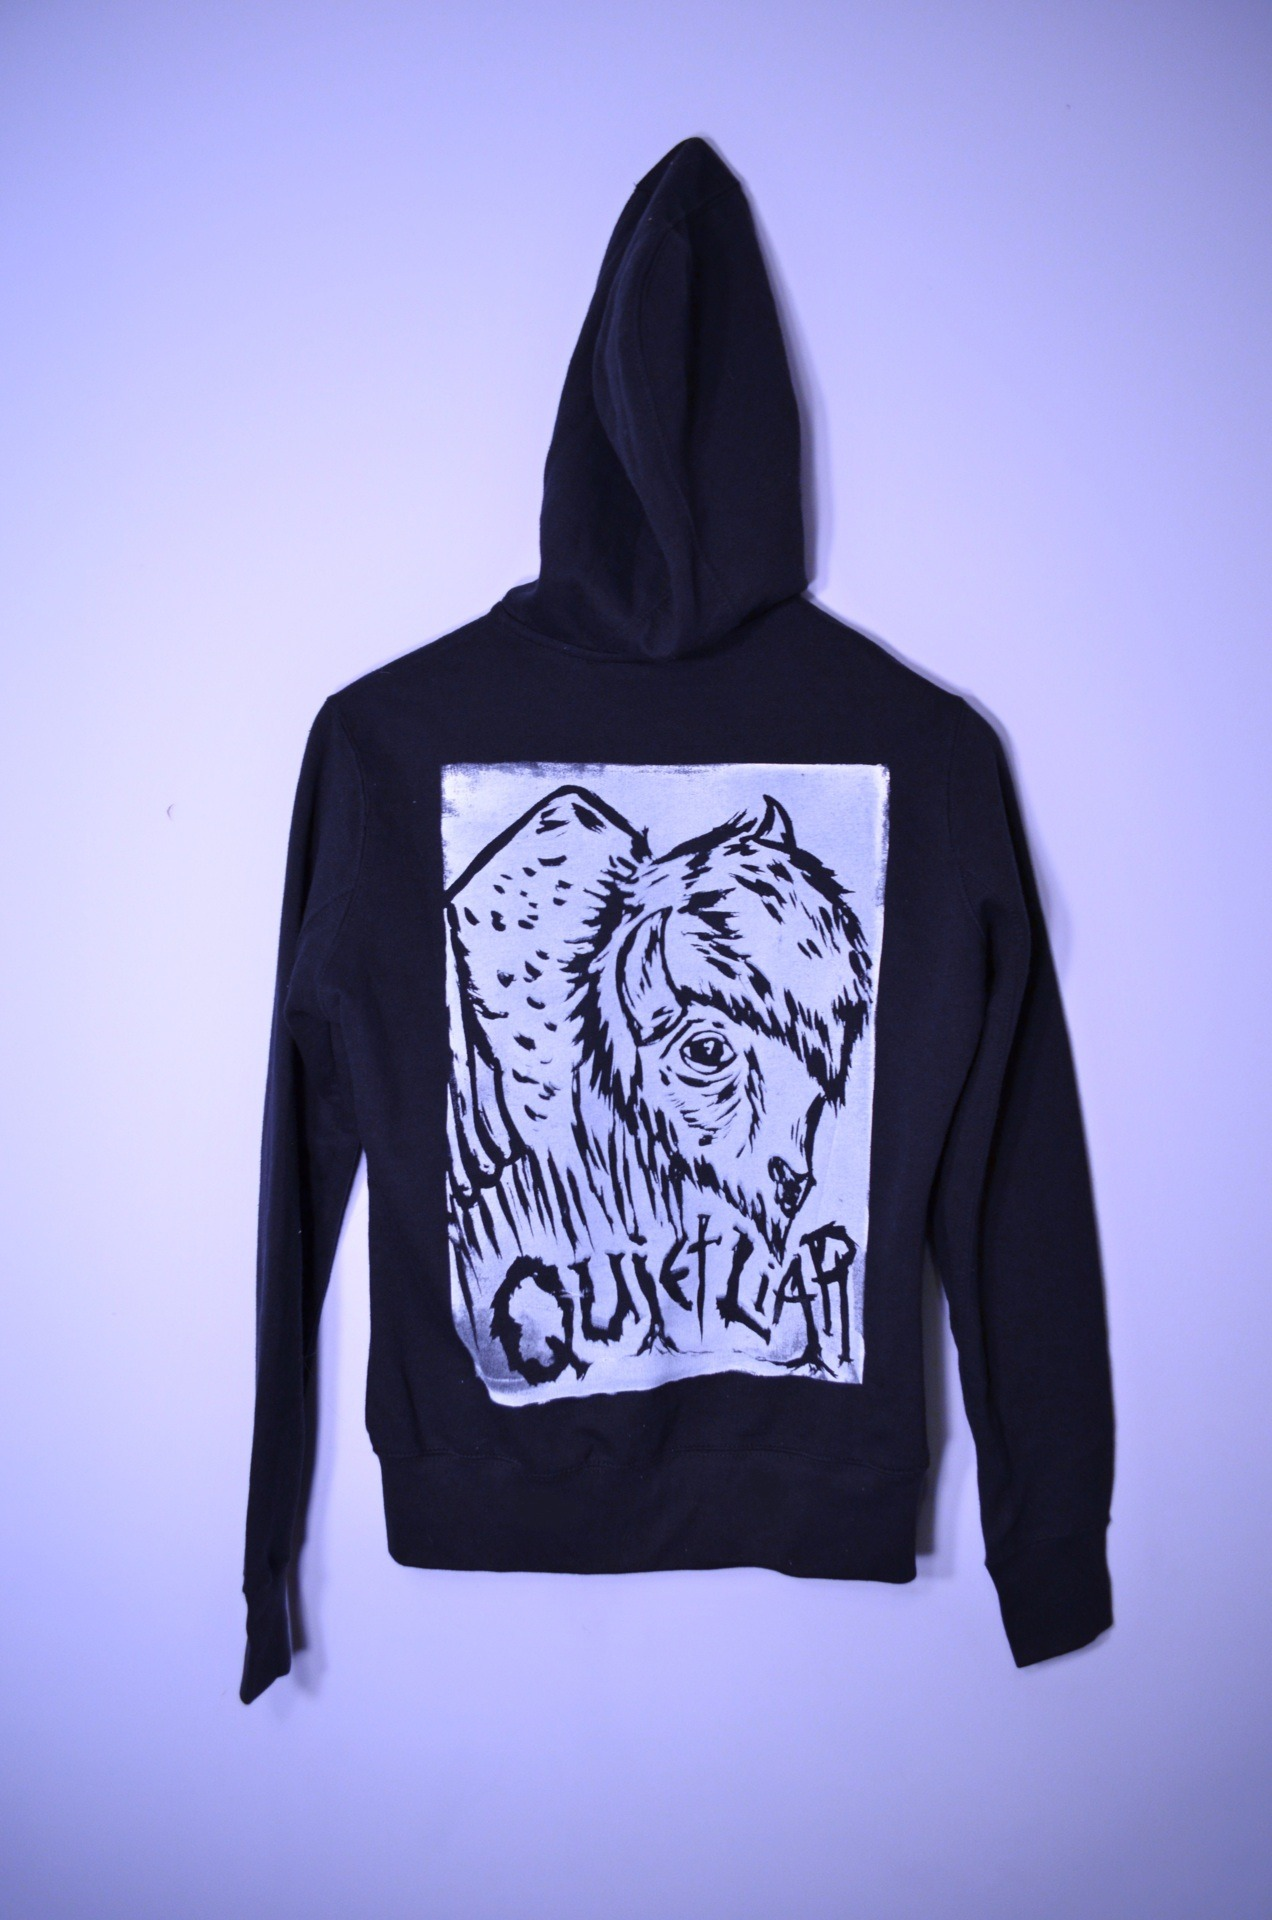 put the new buffalo print on a plain black hoodie i had lying around. the nice thing about being a screen printer: printing cool designs on all your clothes. haha www.facebook.com/quietliarclothing